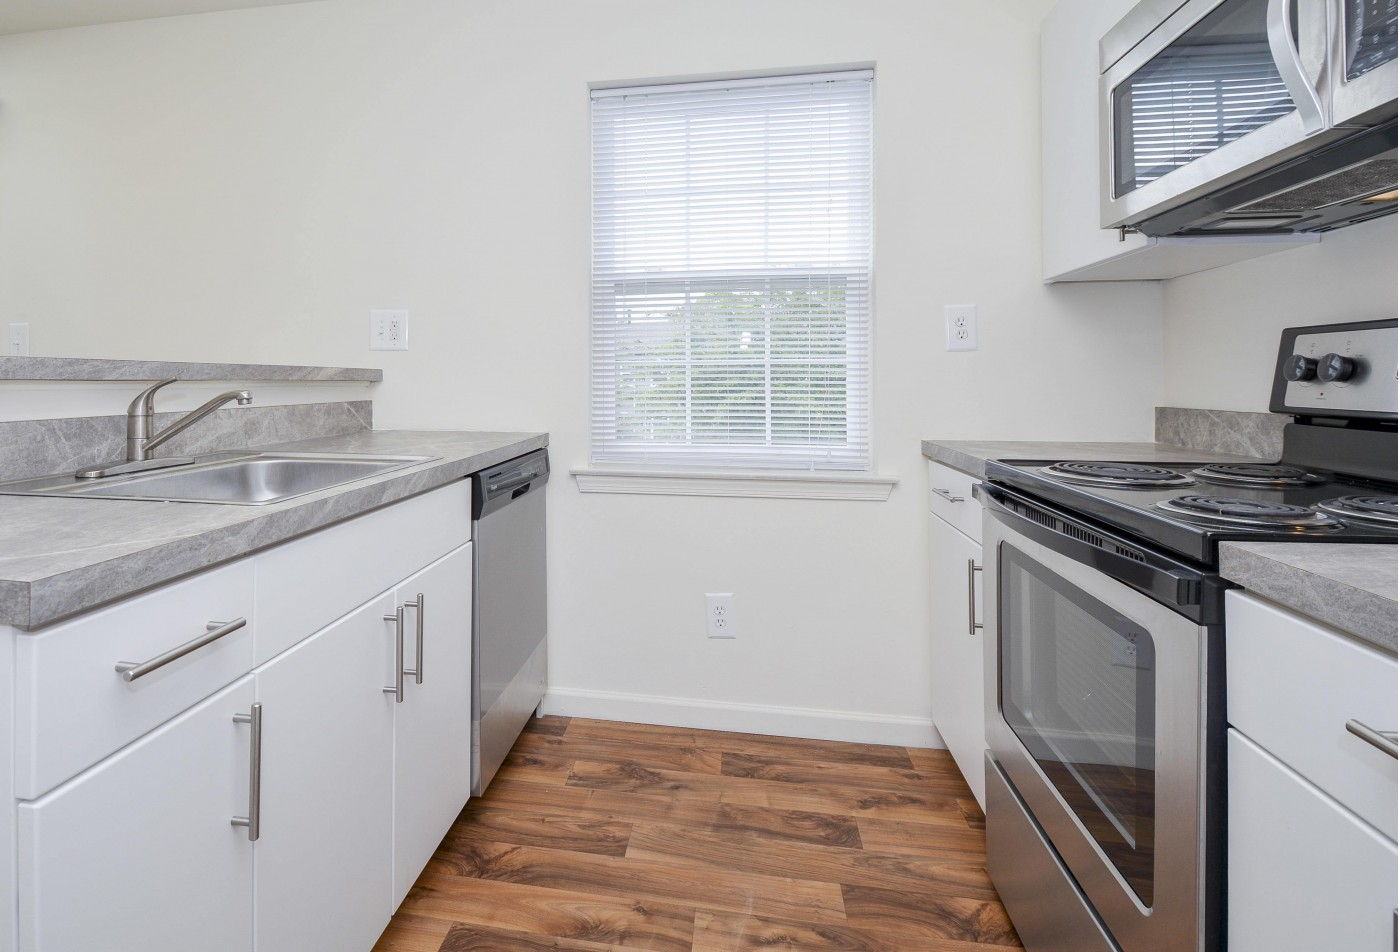 Apartment Homes in Marlton, NJ | Willlow Ridge Village Apartments